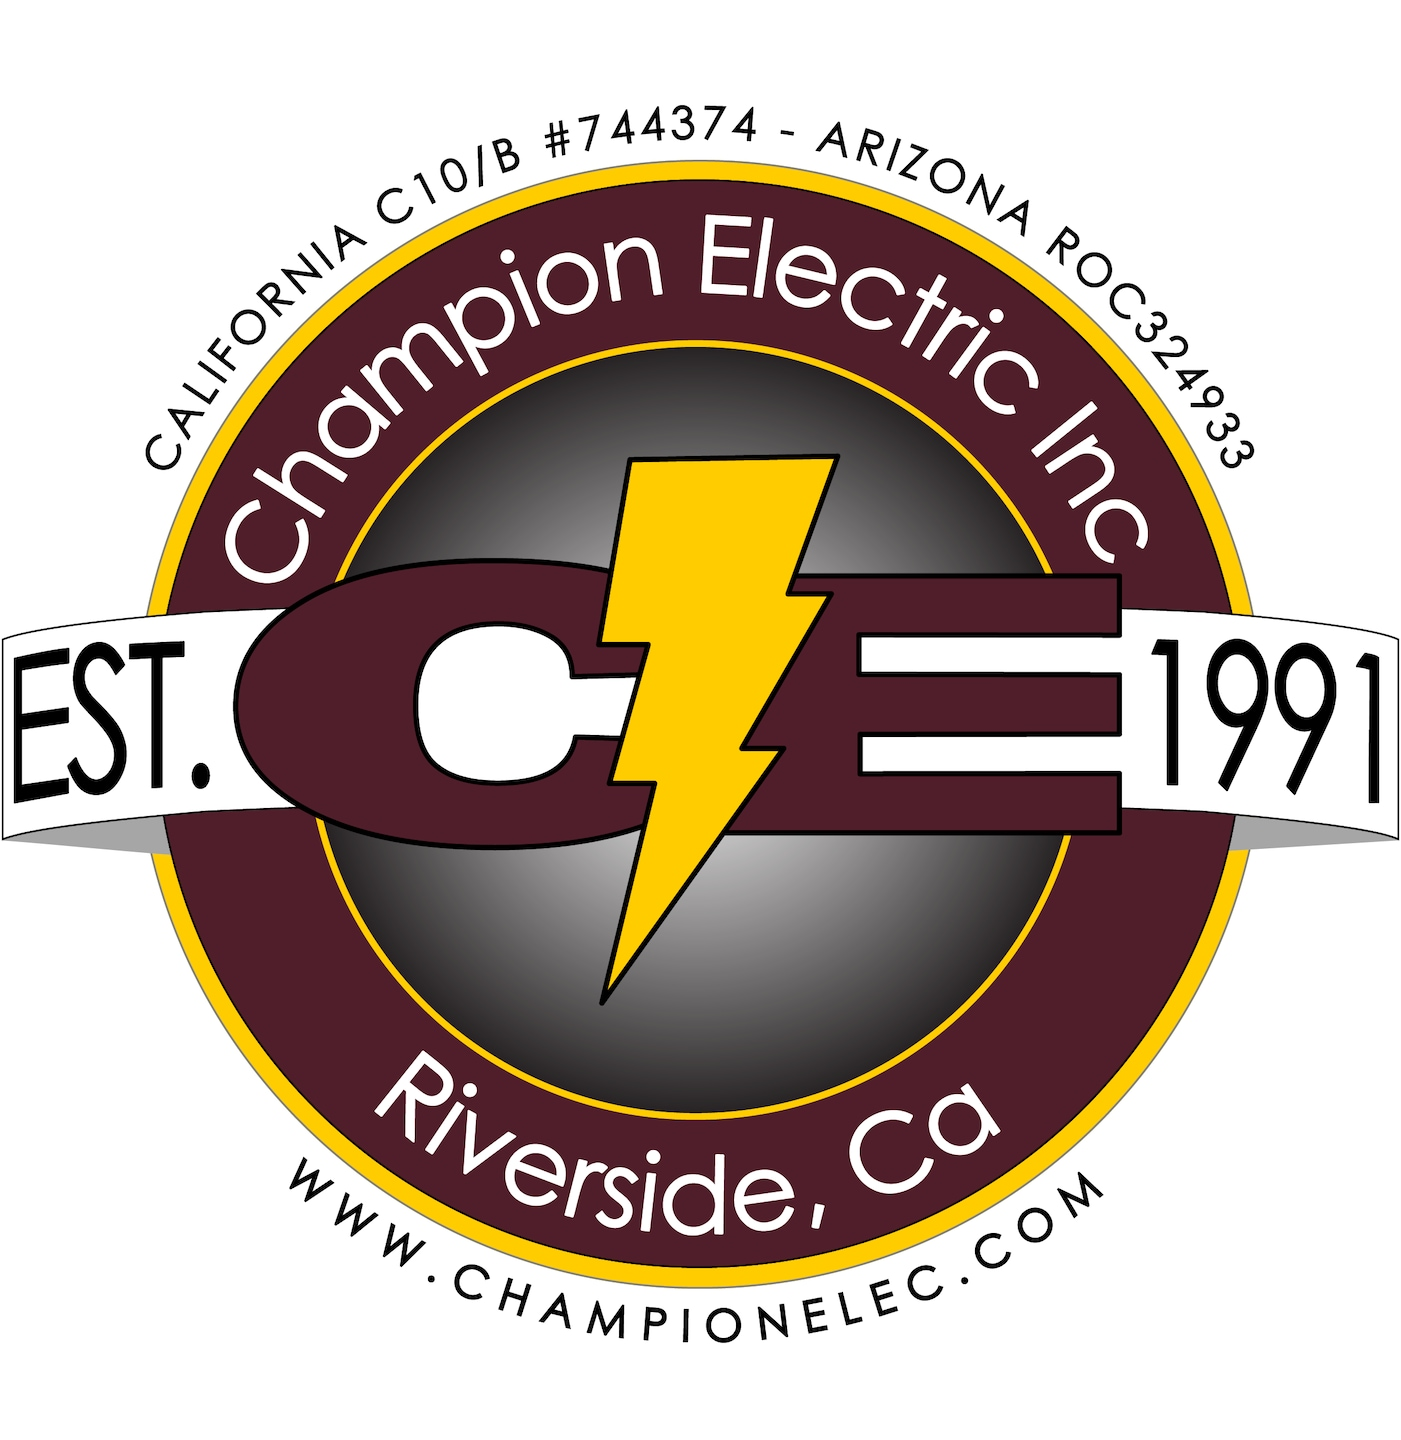 CHAMPION ELECTRIC